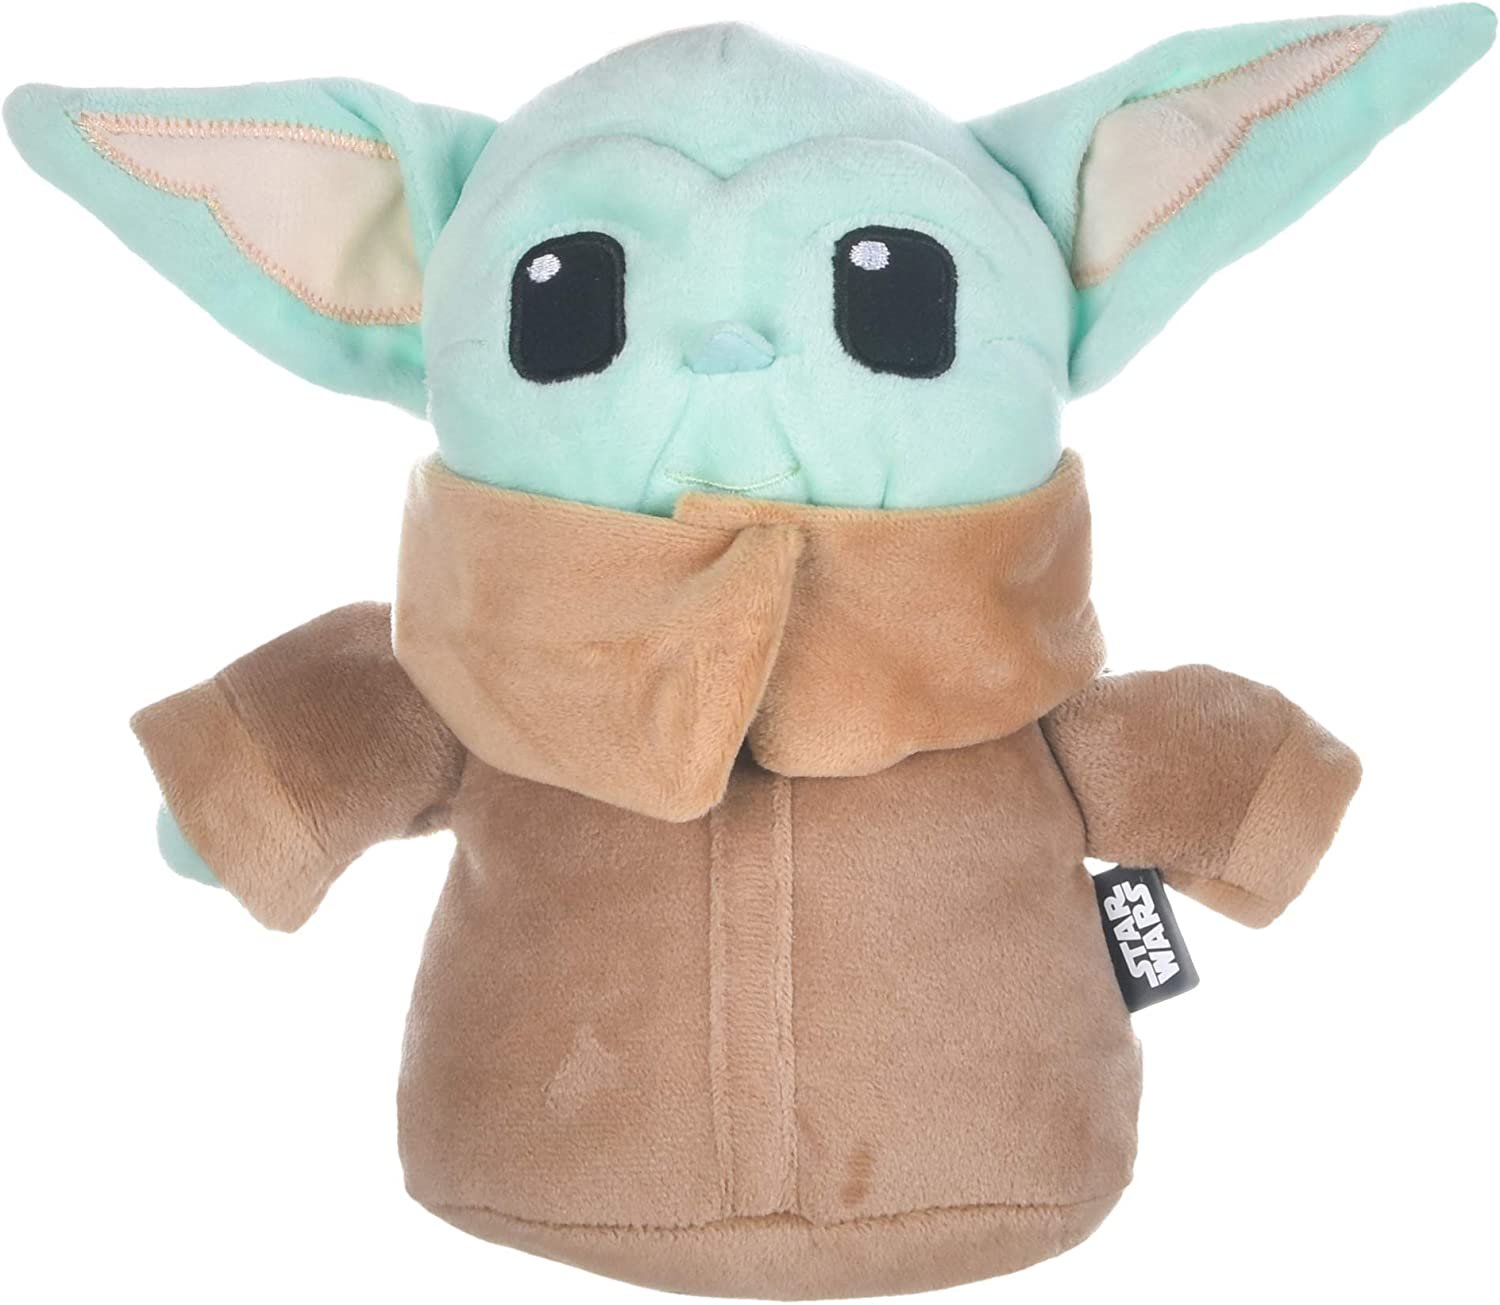 STAR outlet WARS Mandalorian The Child Plush Figure Dog Toy 6 Inch 1 year warranty 9 -